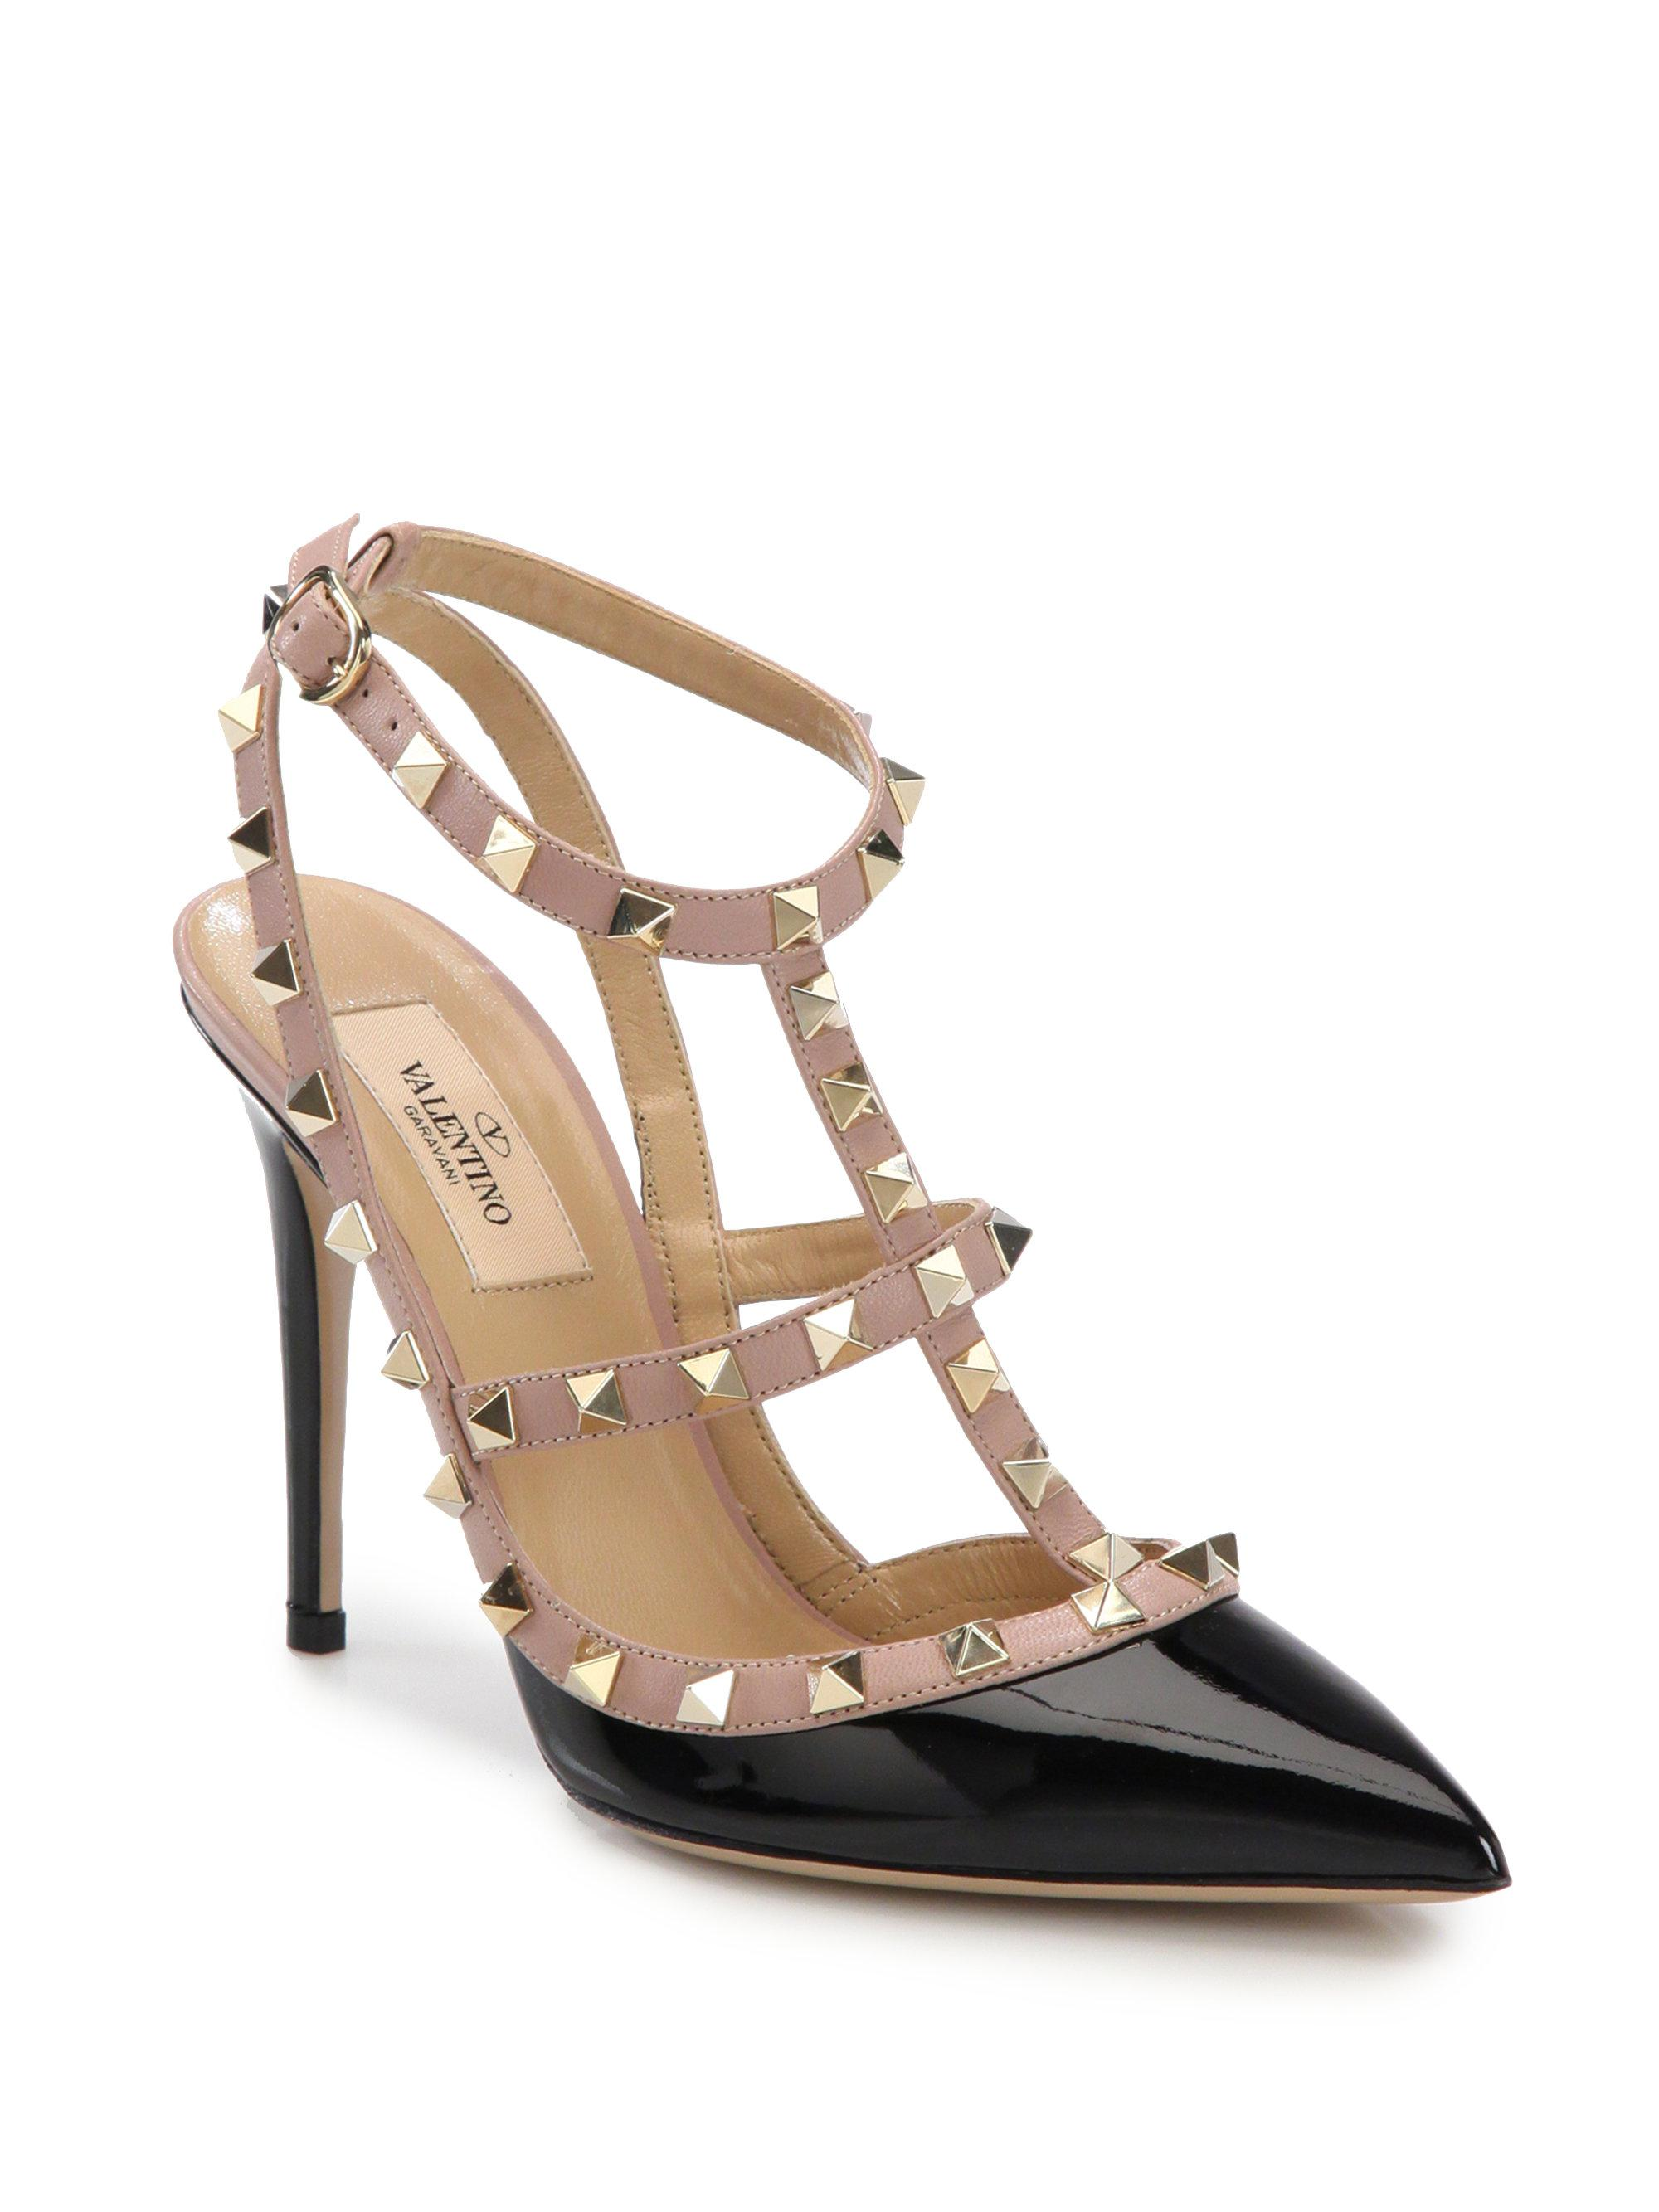 cheap price in China 2014 cheap online Valentino Patent Leather Slingback Sandals clearance new styles discount choice hhaYQdKXIF